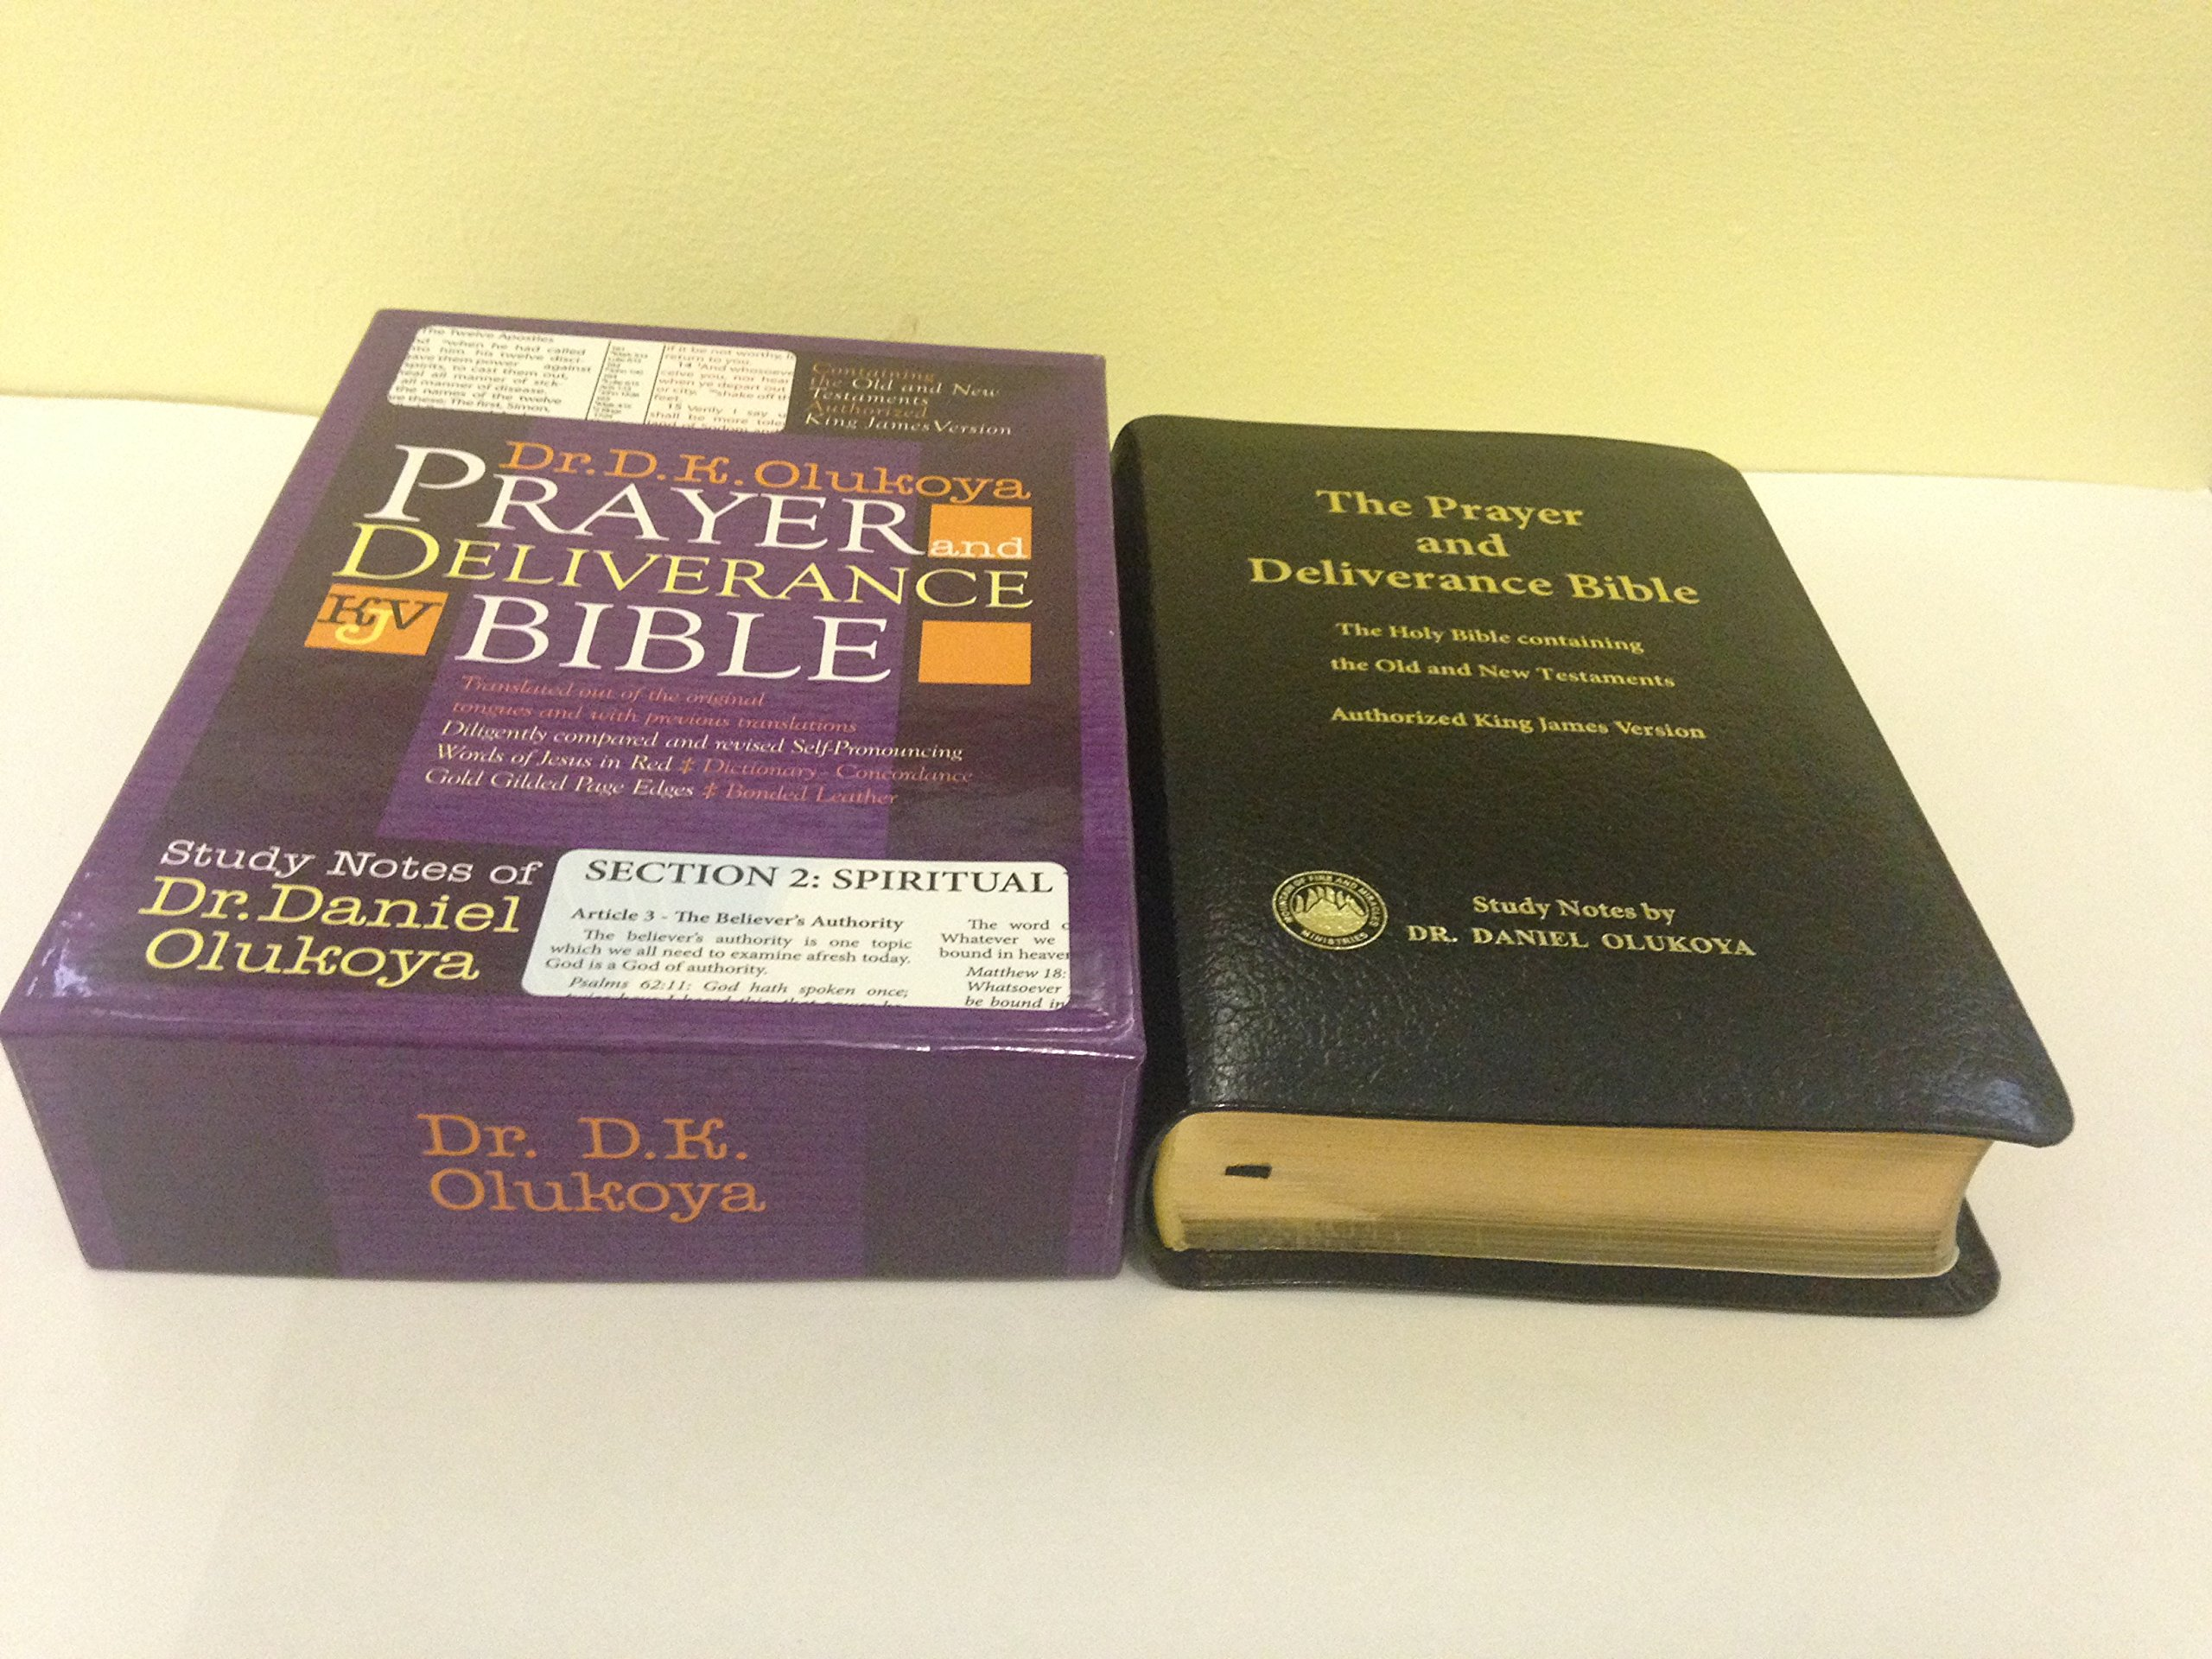 Prayer and Deliverance Bible (Big): Dr D  K  Olukoya: 9781587122040